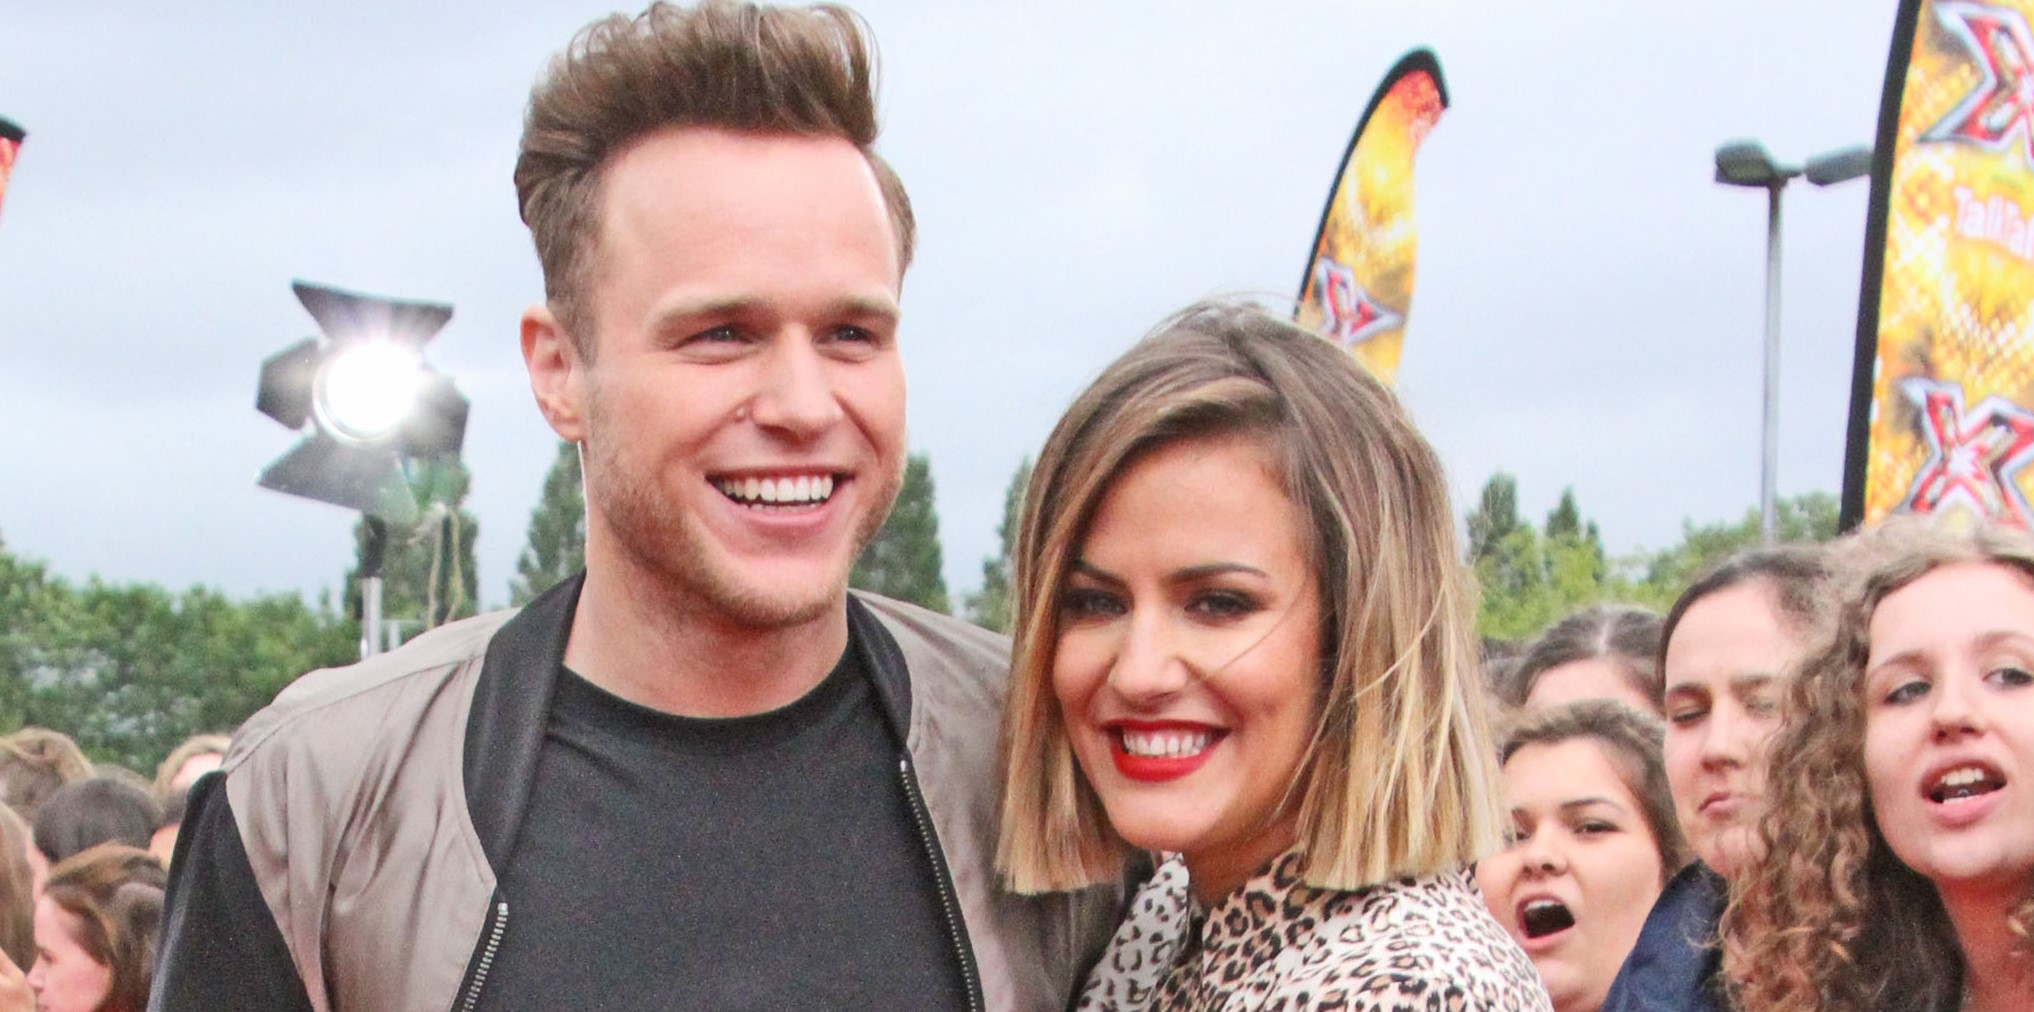 'Heartbroken' Olly Murs pays tribute to Caroline Flack after her funeral